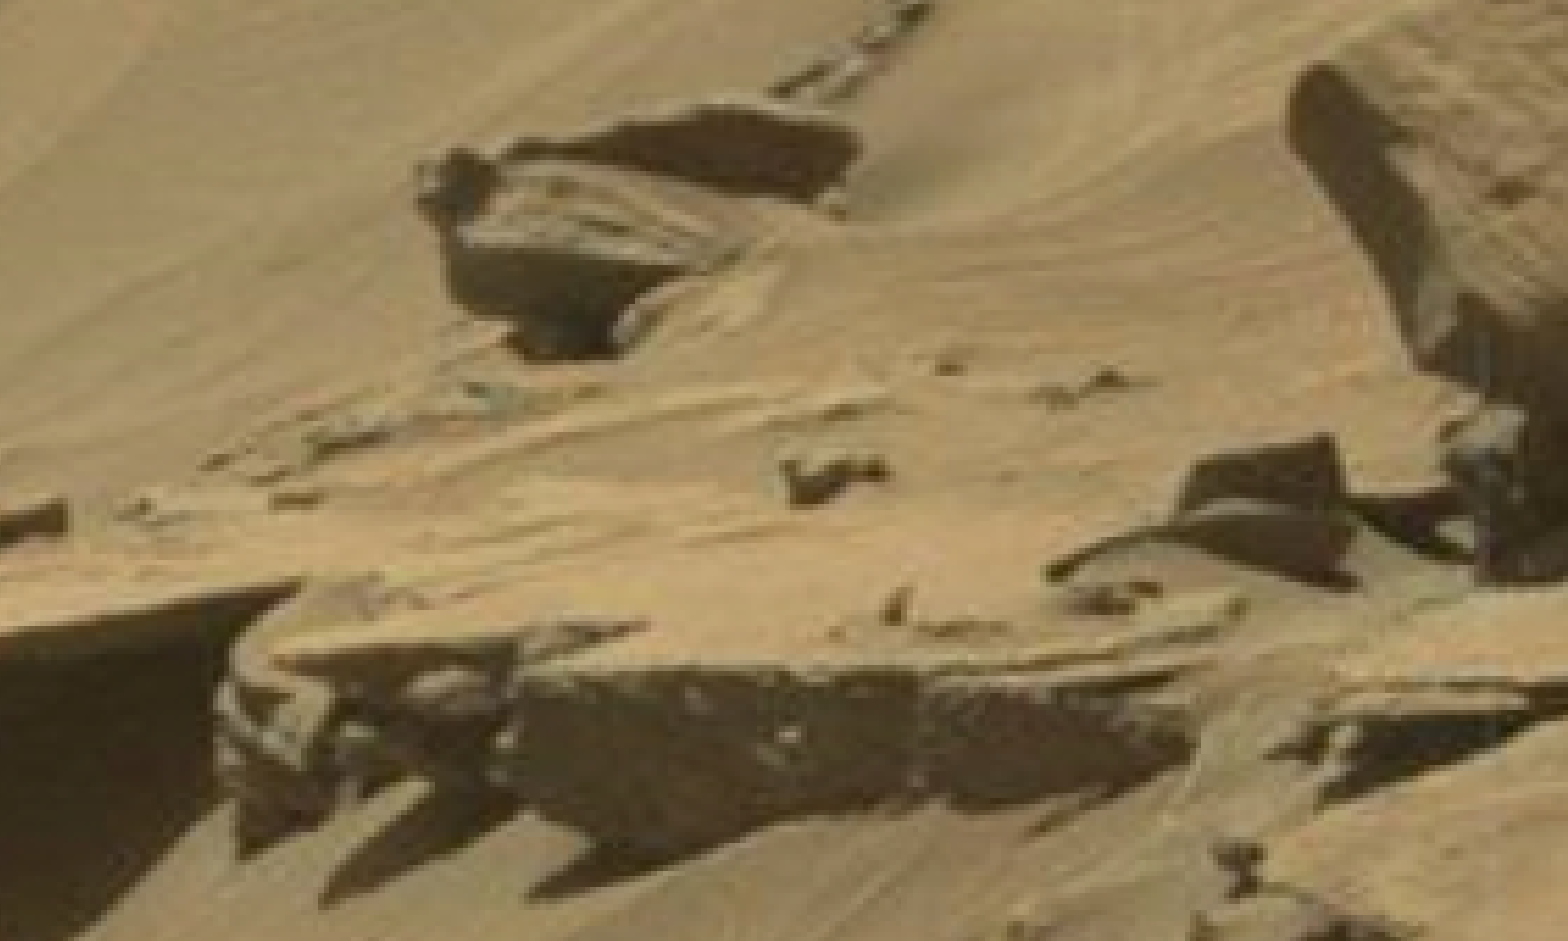 mars sol 1296 anomaly-artifacts 31 was life on mars